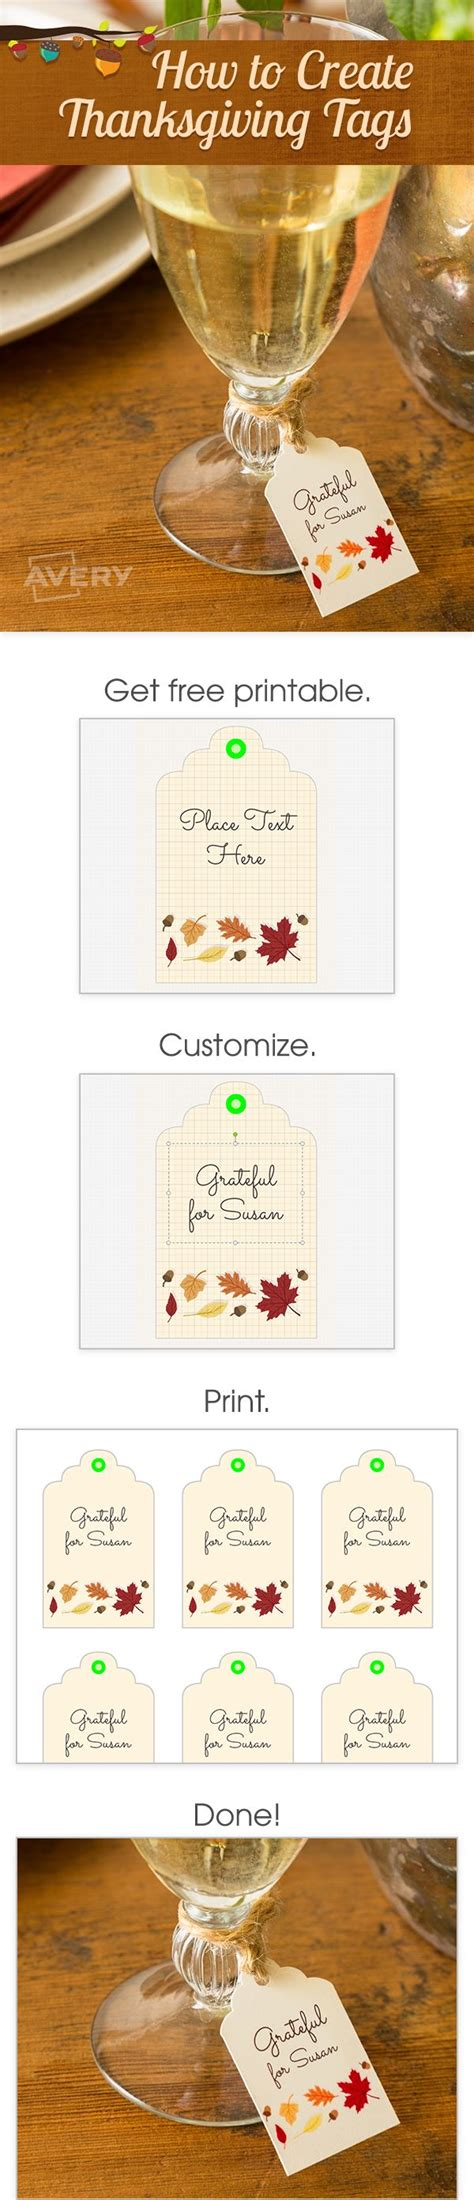 avery free thinkgiven card templates 57 best thanksgiving ideas images on